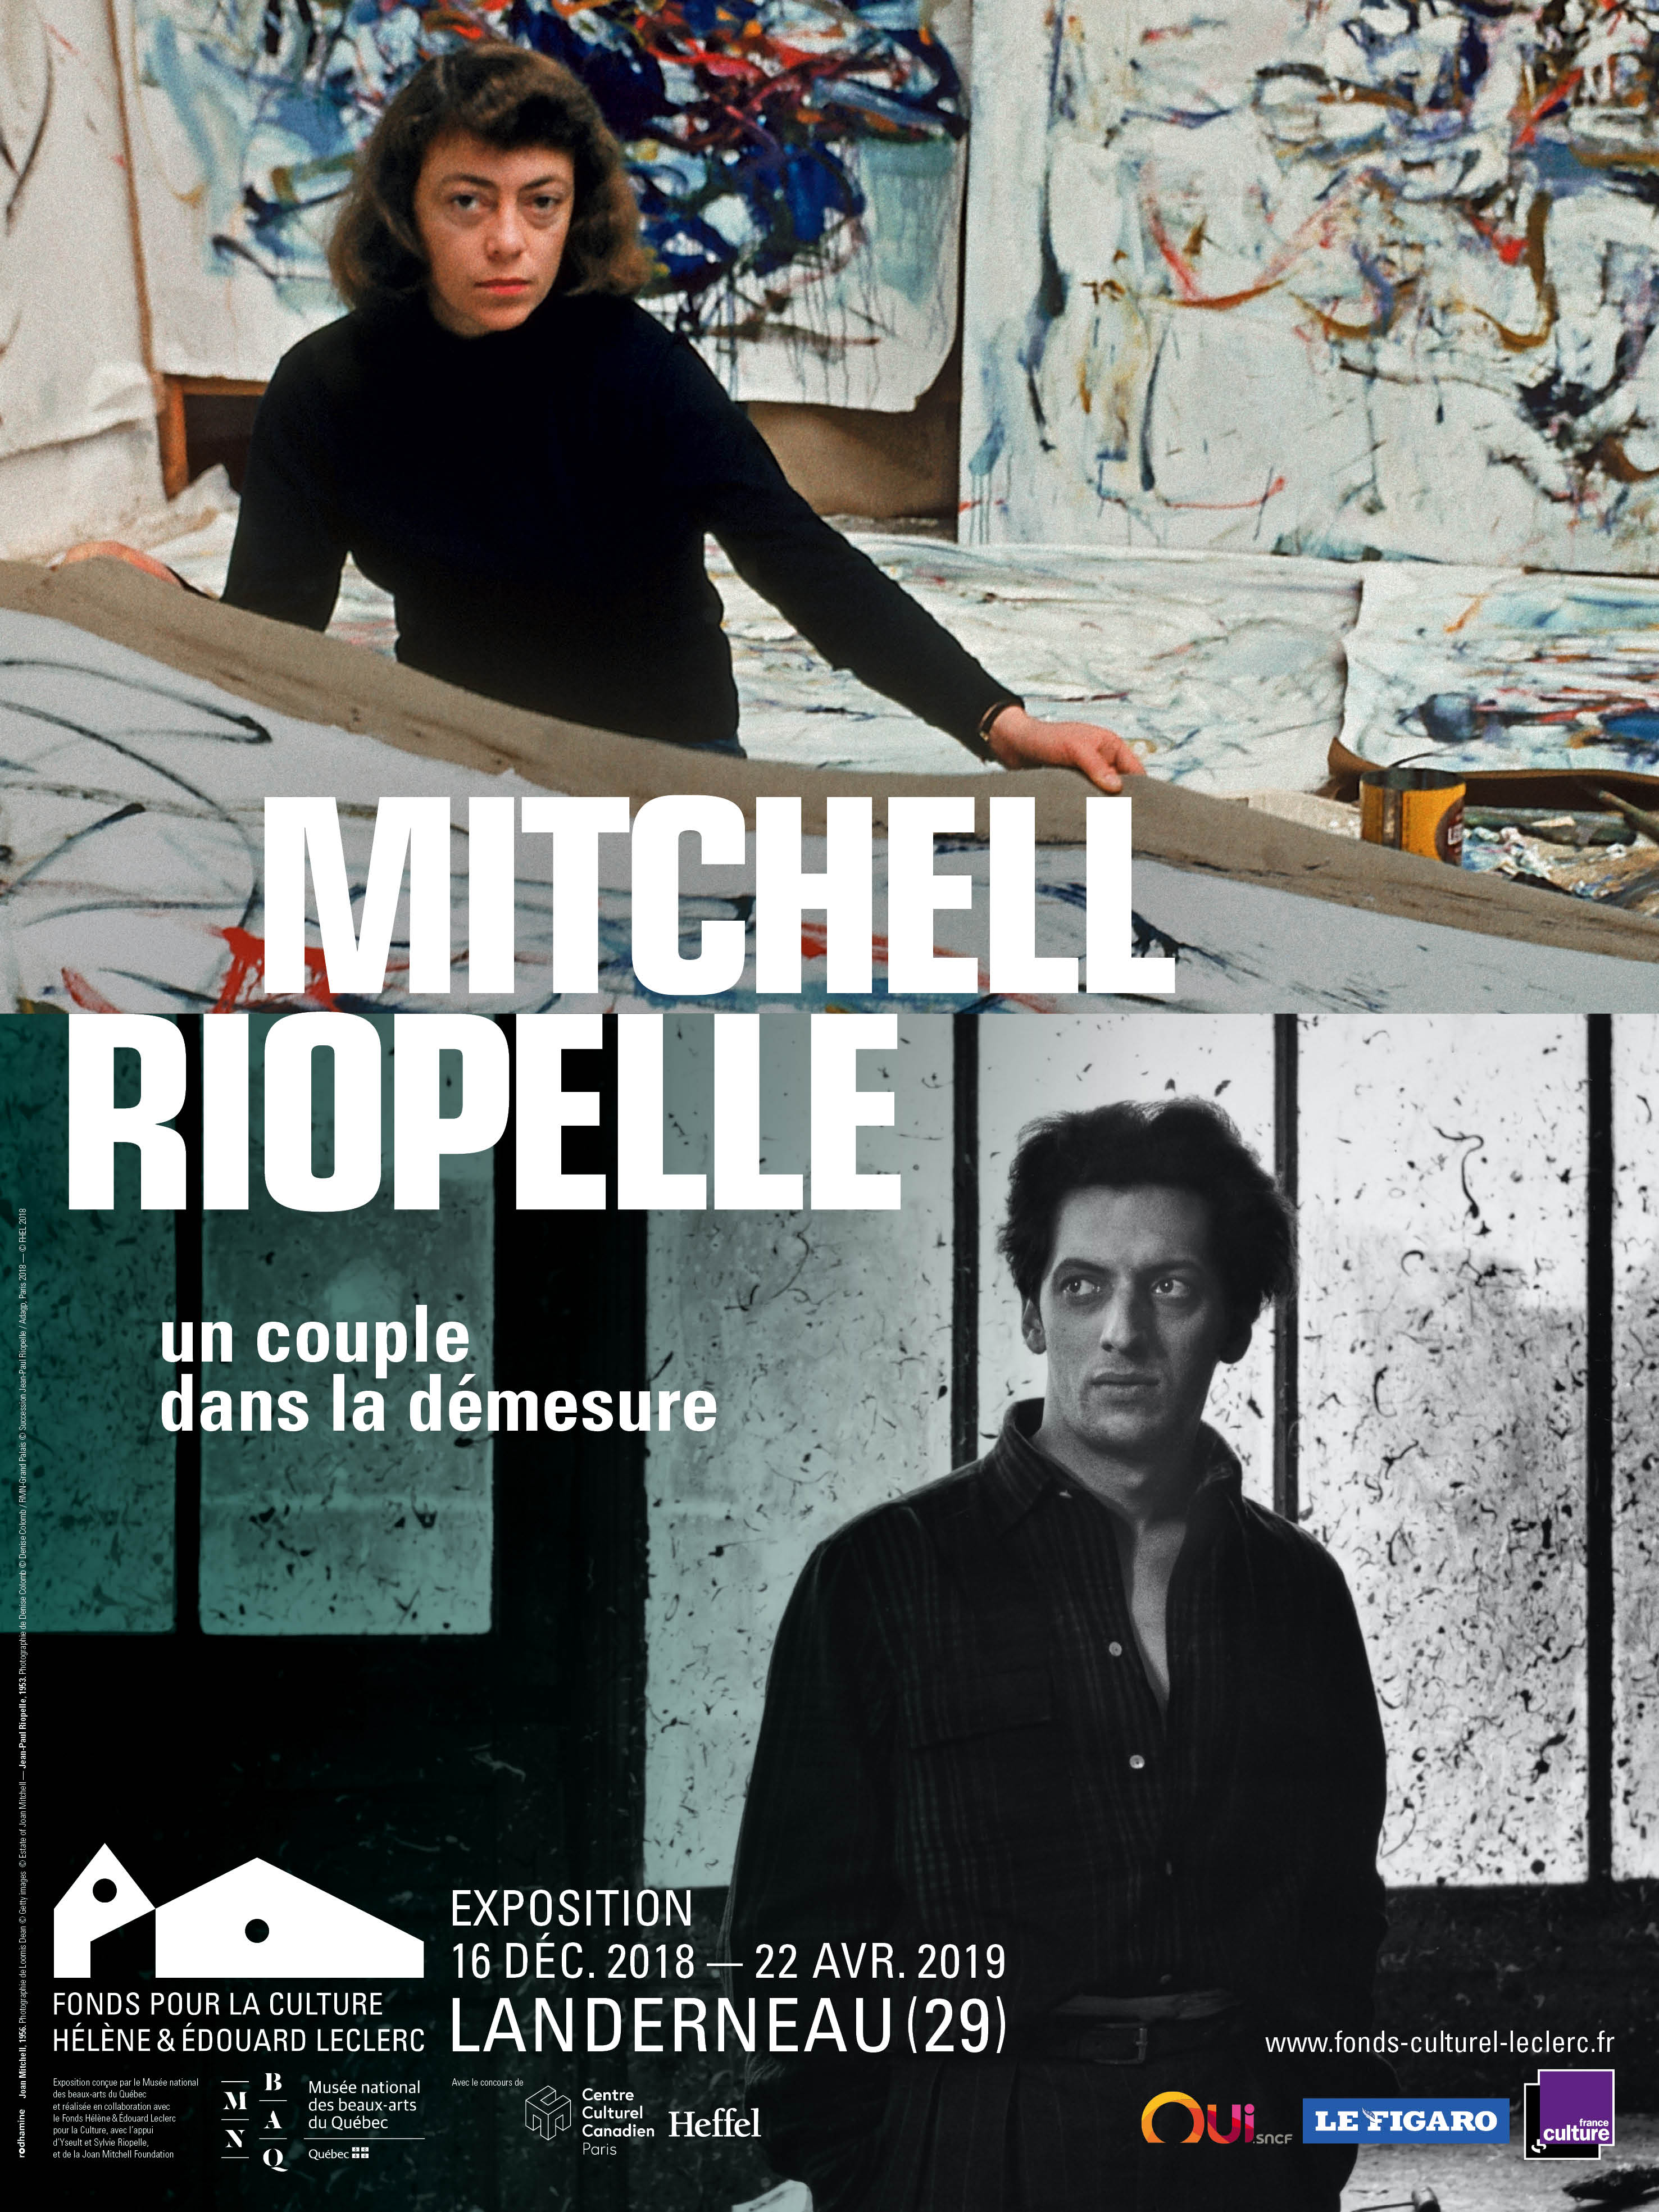 Affiche_Mitchell, 1956 Photo L.Dean © Getty Images © Estate of Joan Mitchell_Riopelle, 1953 Photo D.Colomb - RMN Grd Palais © Succession Riopelle-Adagp2018 © FHEL 2018